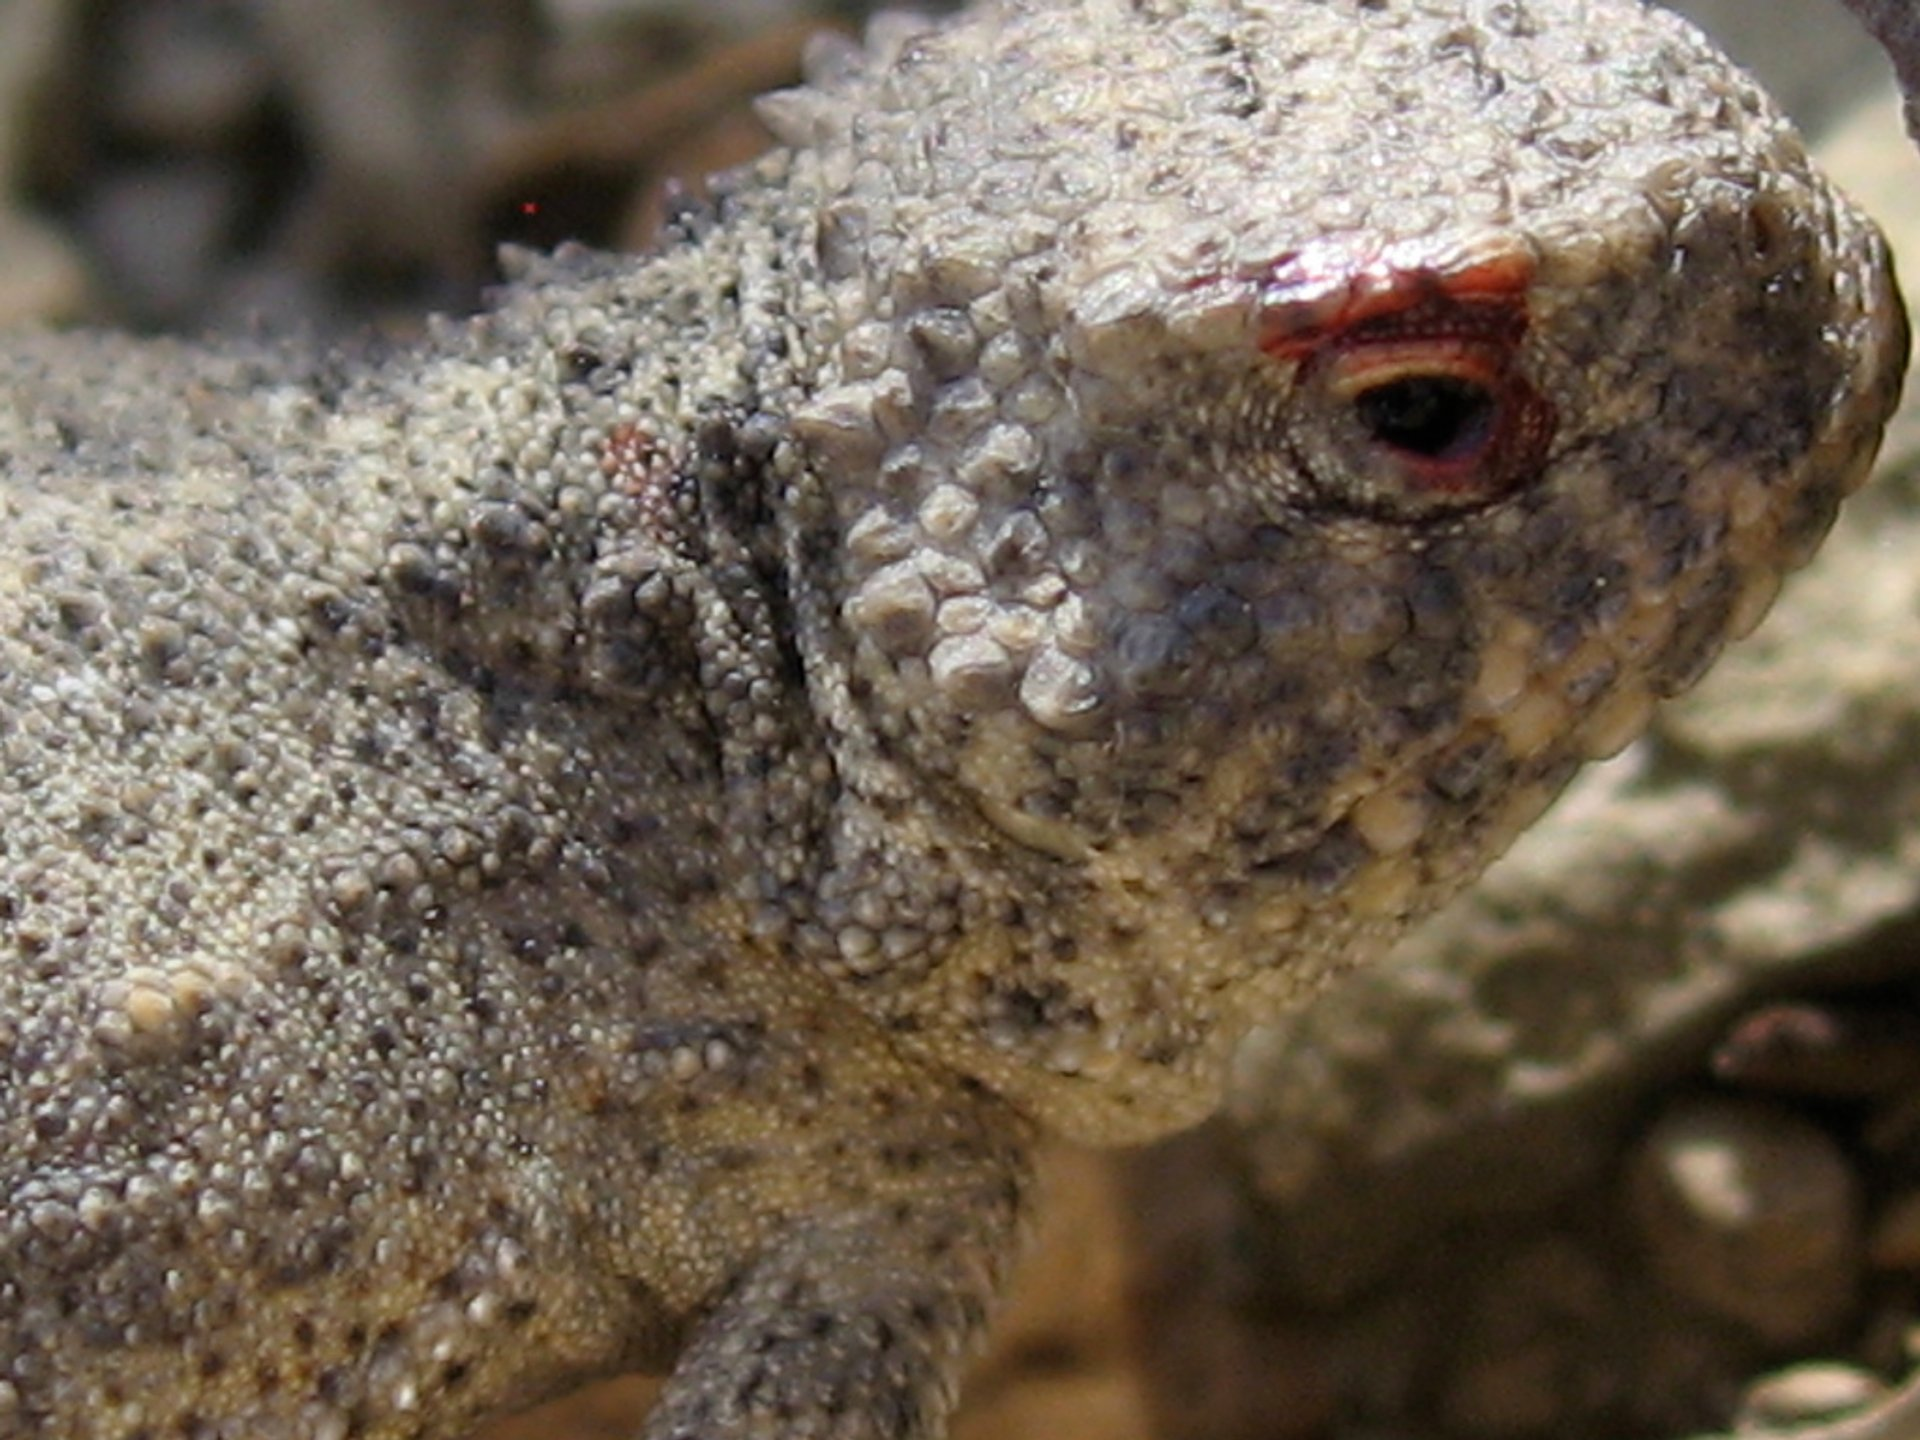 Horned Lizard with bloody eye, Montana, USA 2020